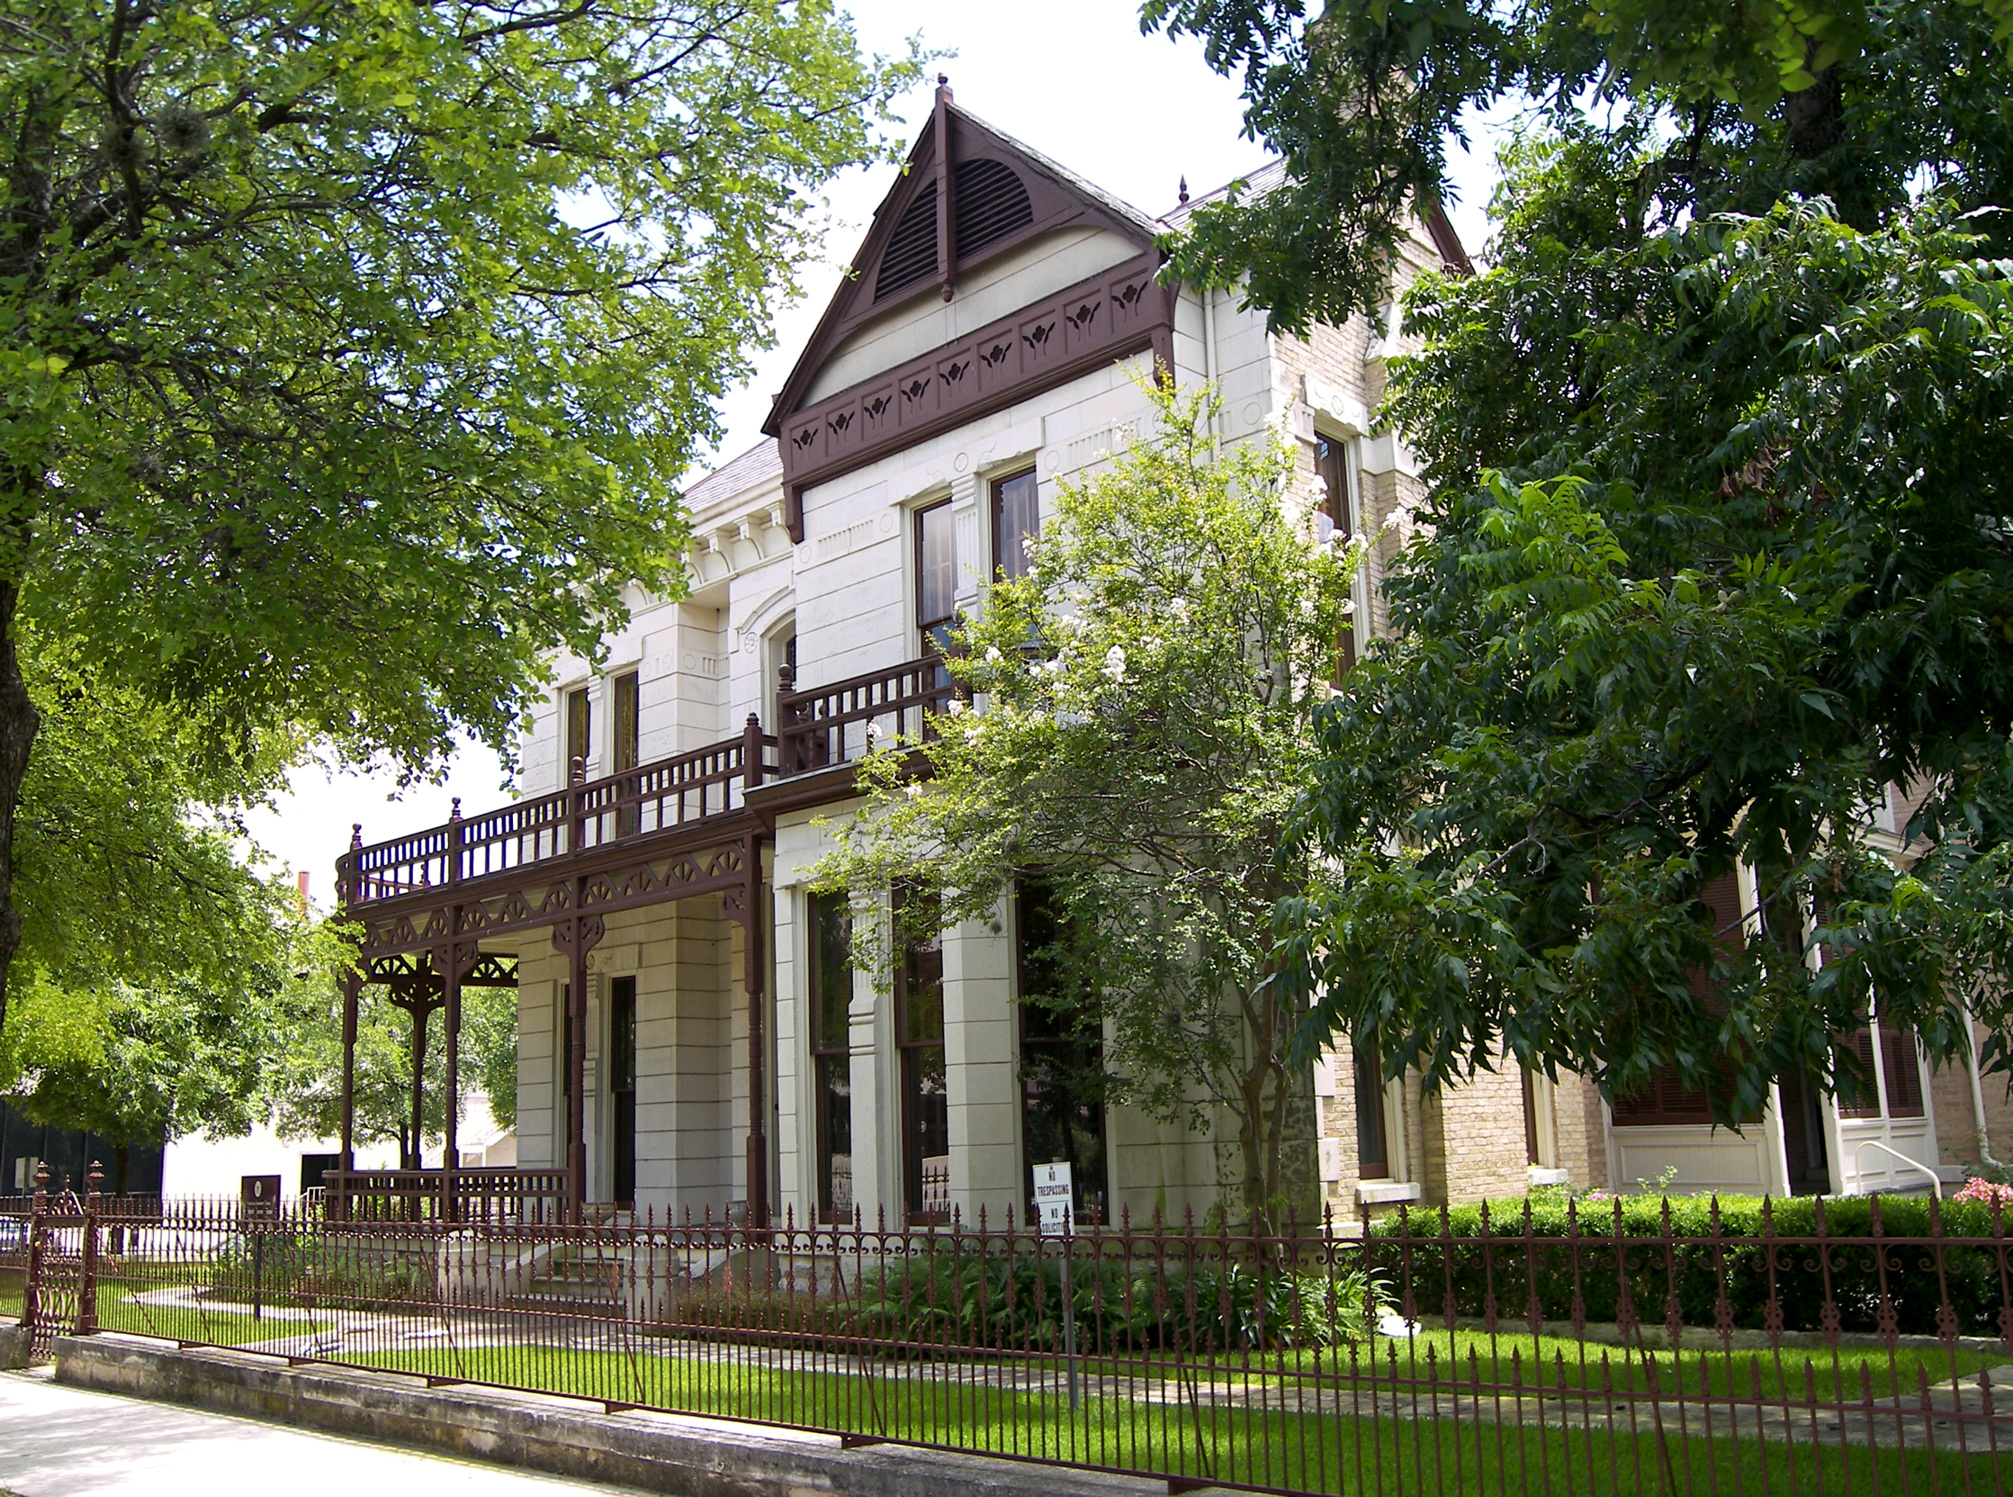 Large, two-story Victorian style building with large porch and verandas and ornate iron railings, white brick or limestone.